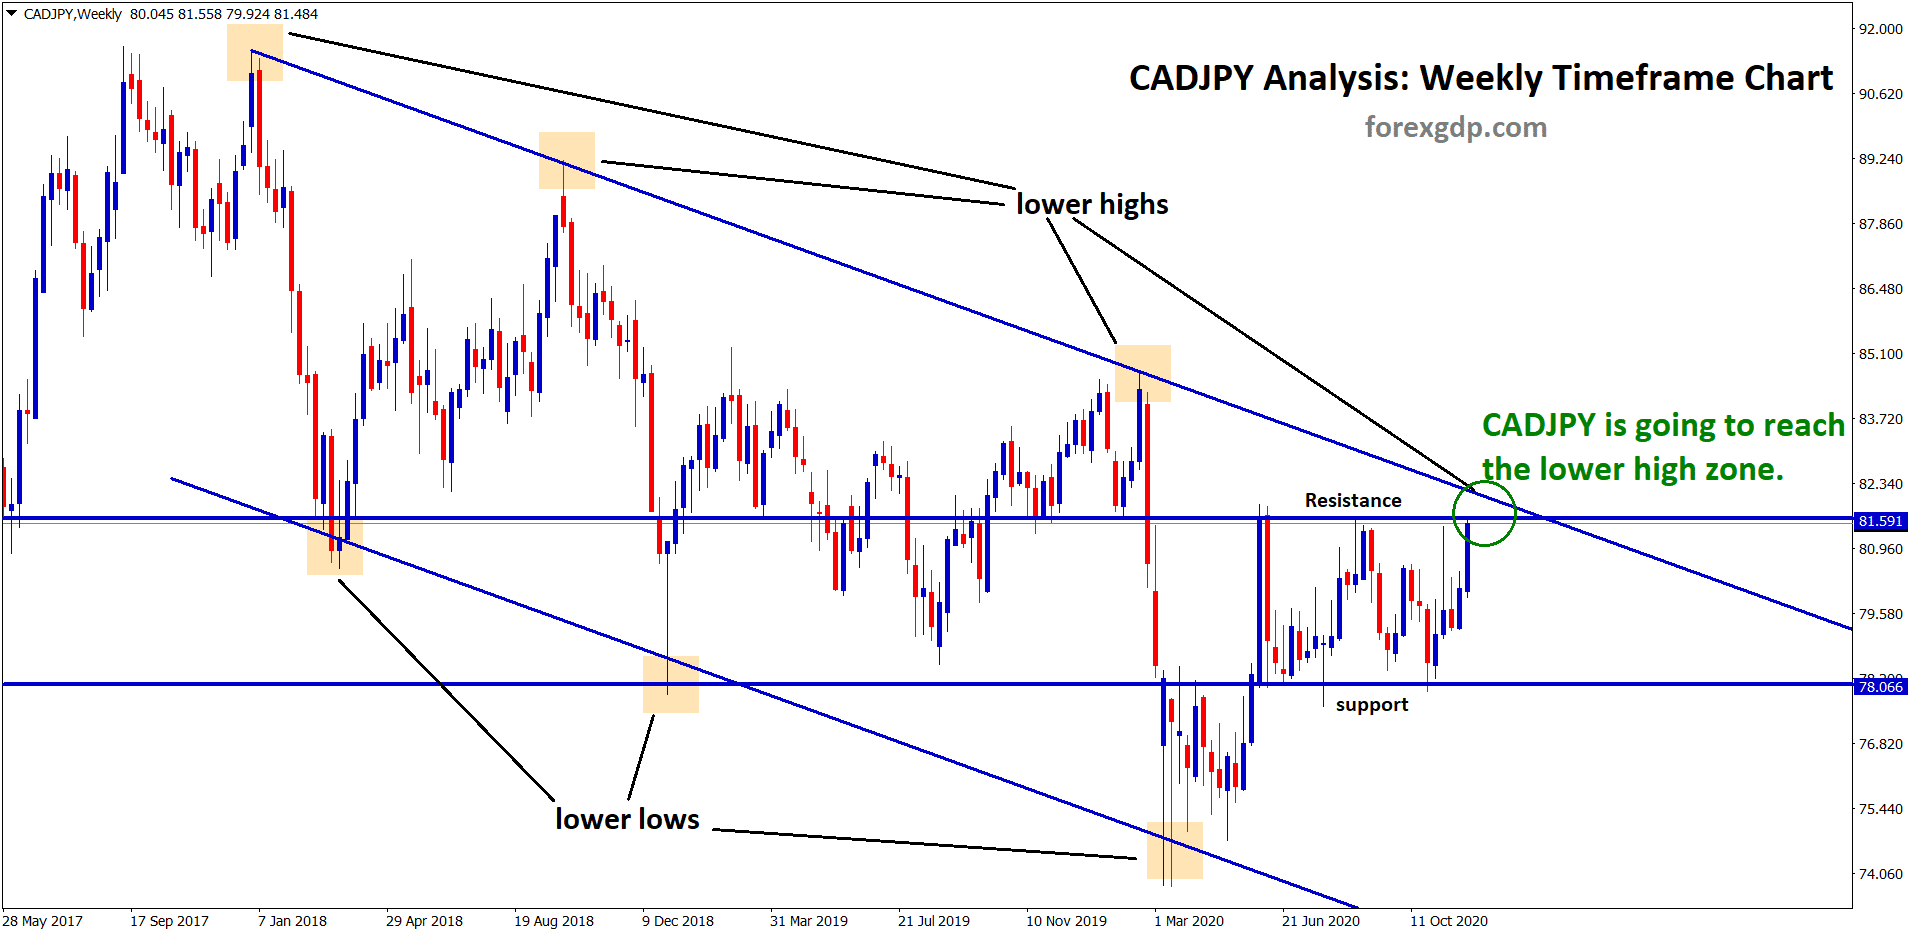 cadjpy is going to reach the lower high zone of the descending channel downtrend